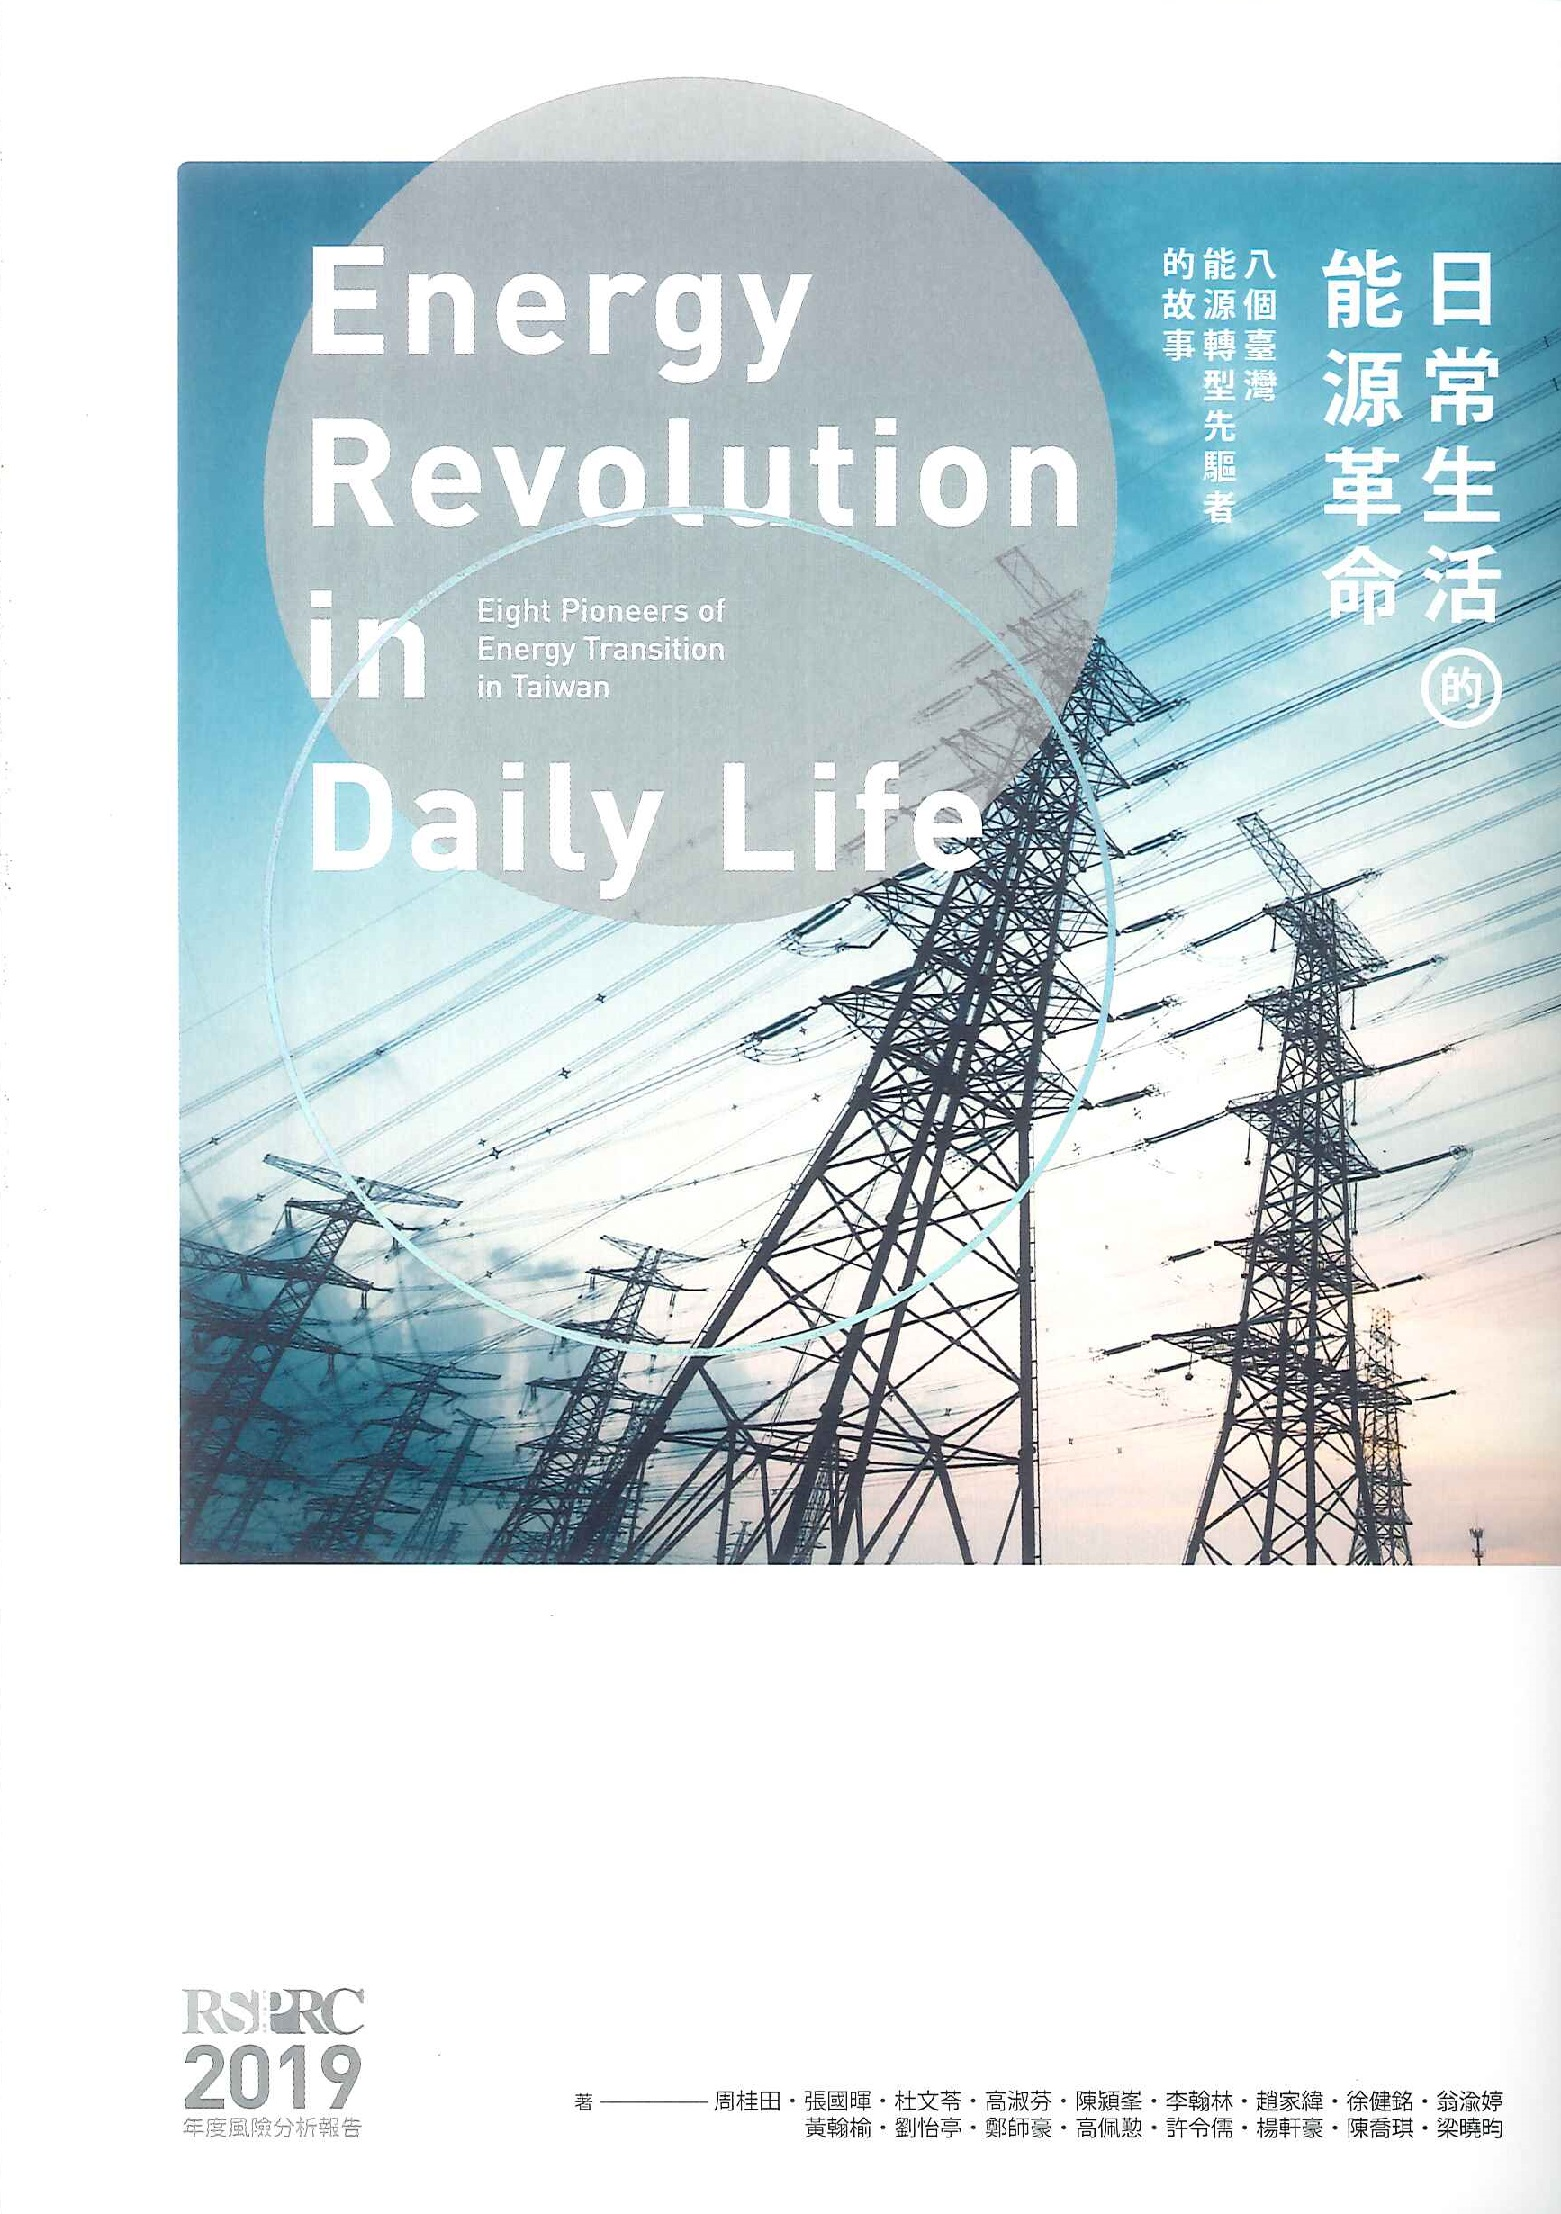 日常生活的能源革命:八個臺灣能源轉型先驅者的故事=Energy revolution in daily life: eight pioneers of energy transition in Taiwan